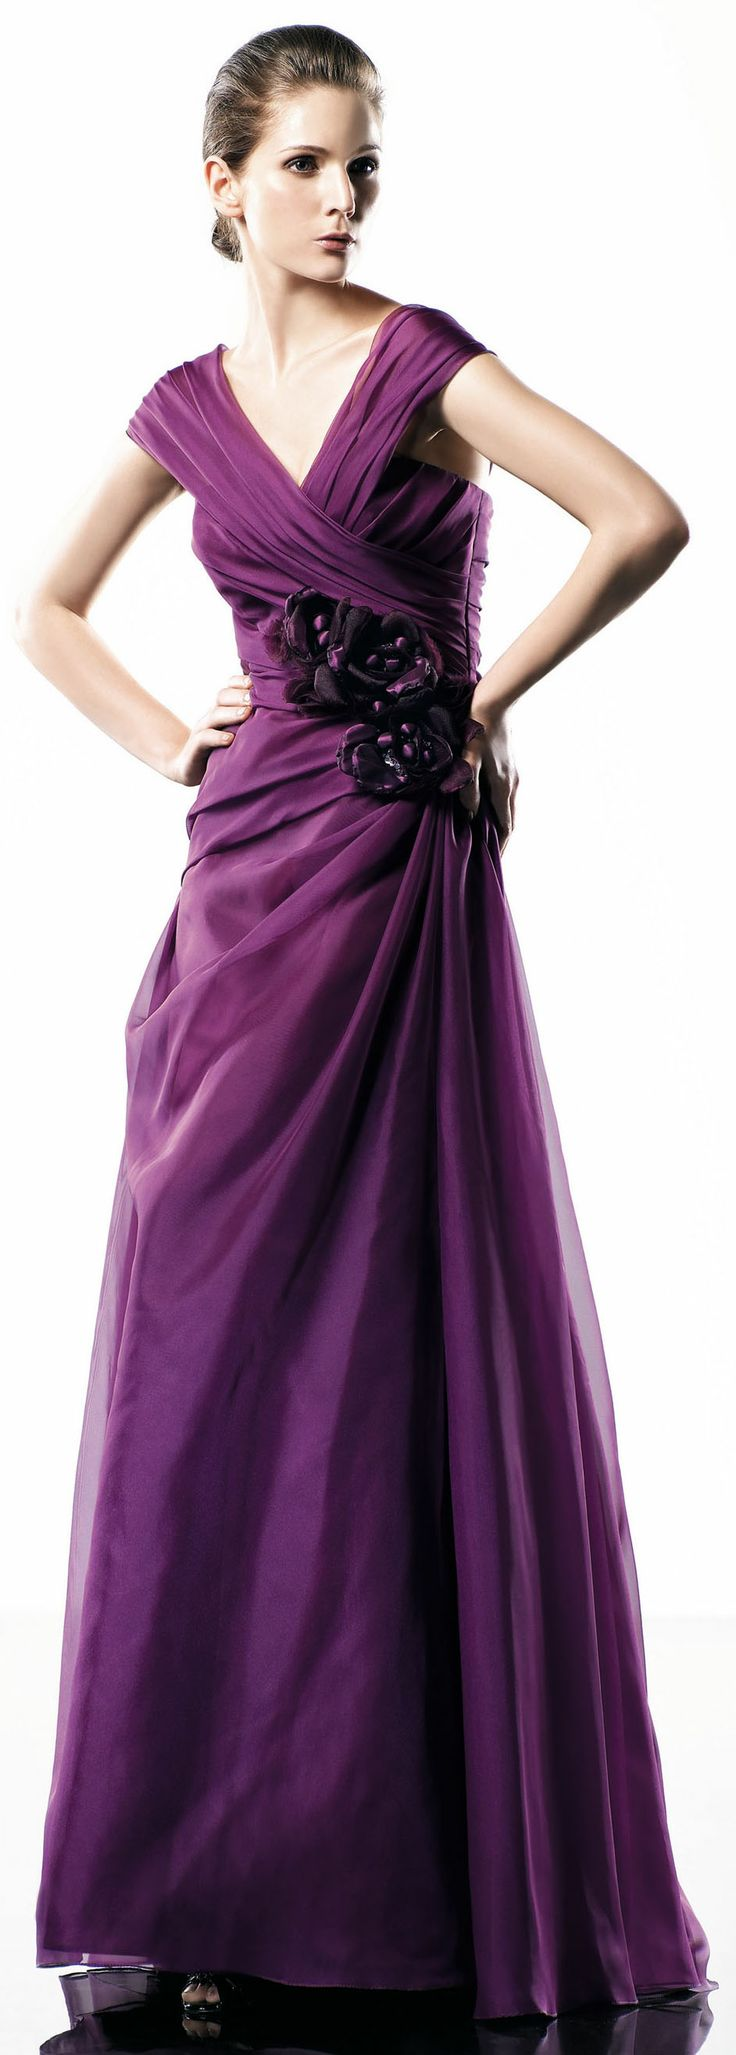 215 best bridesmaid dresses images on pinterest awesome dresses modern a line floor length gownbridesmaid gowns dressbridesmaid gowns dresses ombrellifo Choice Image